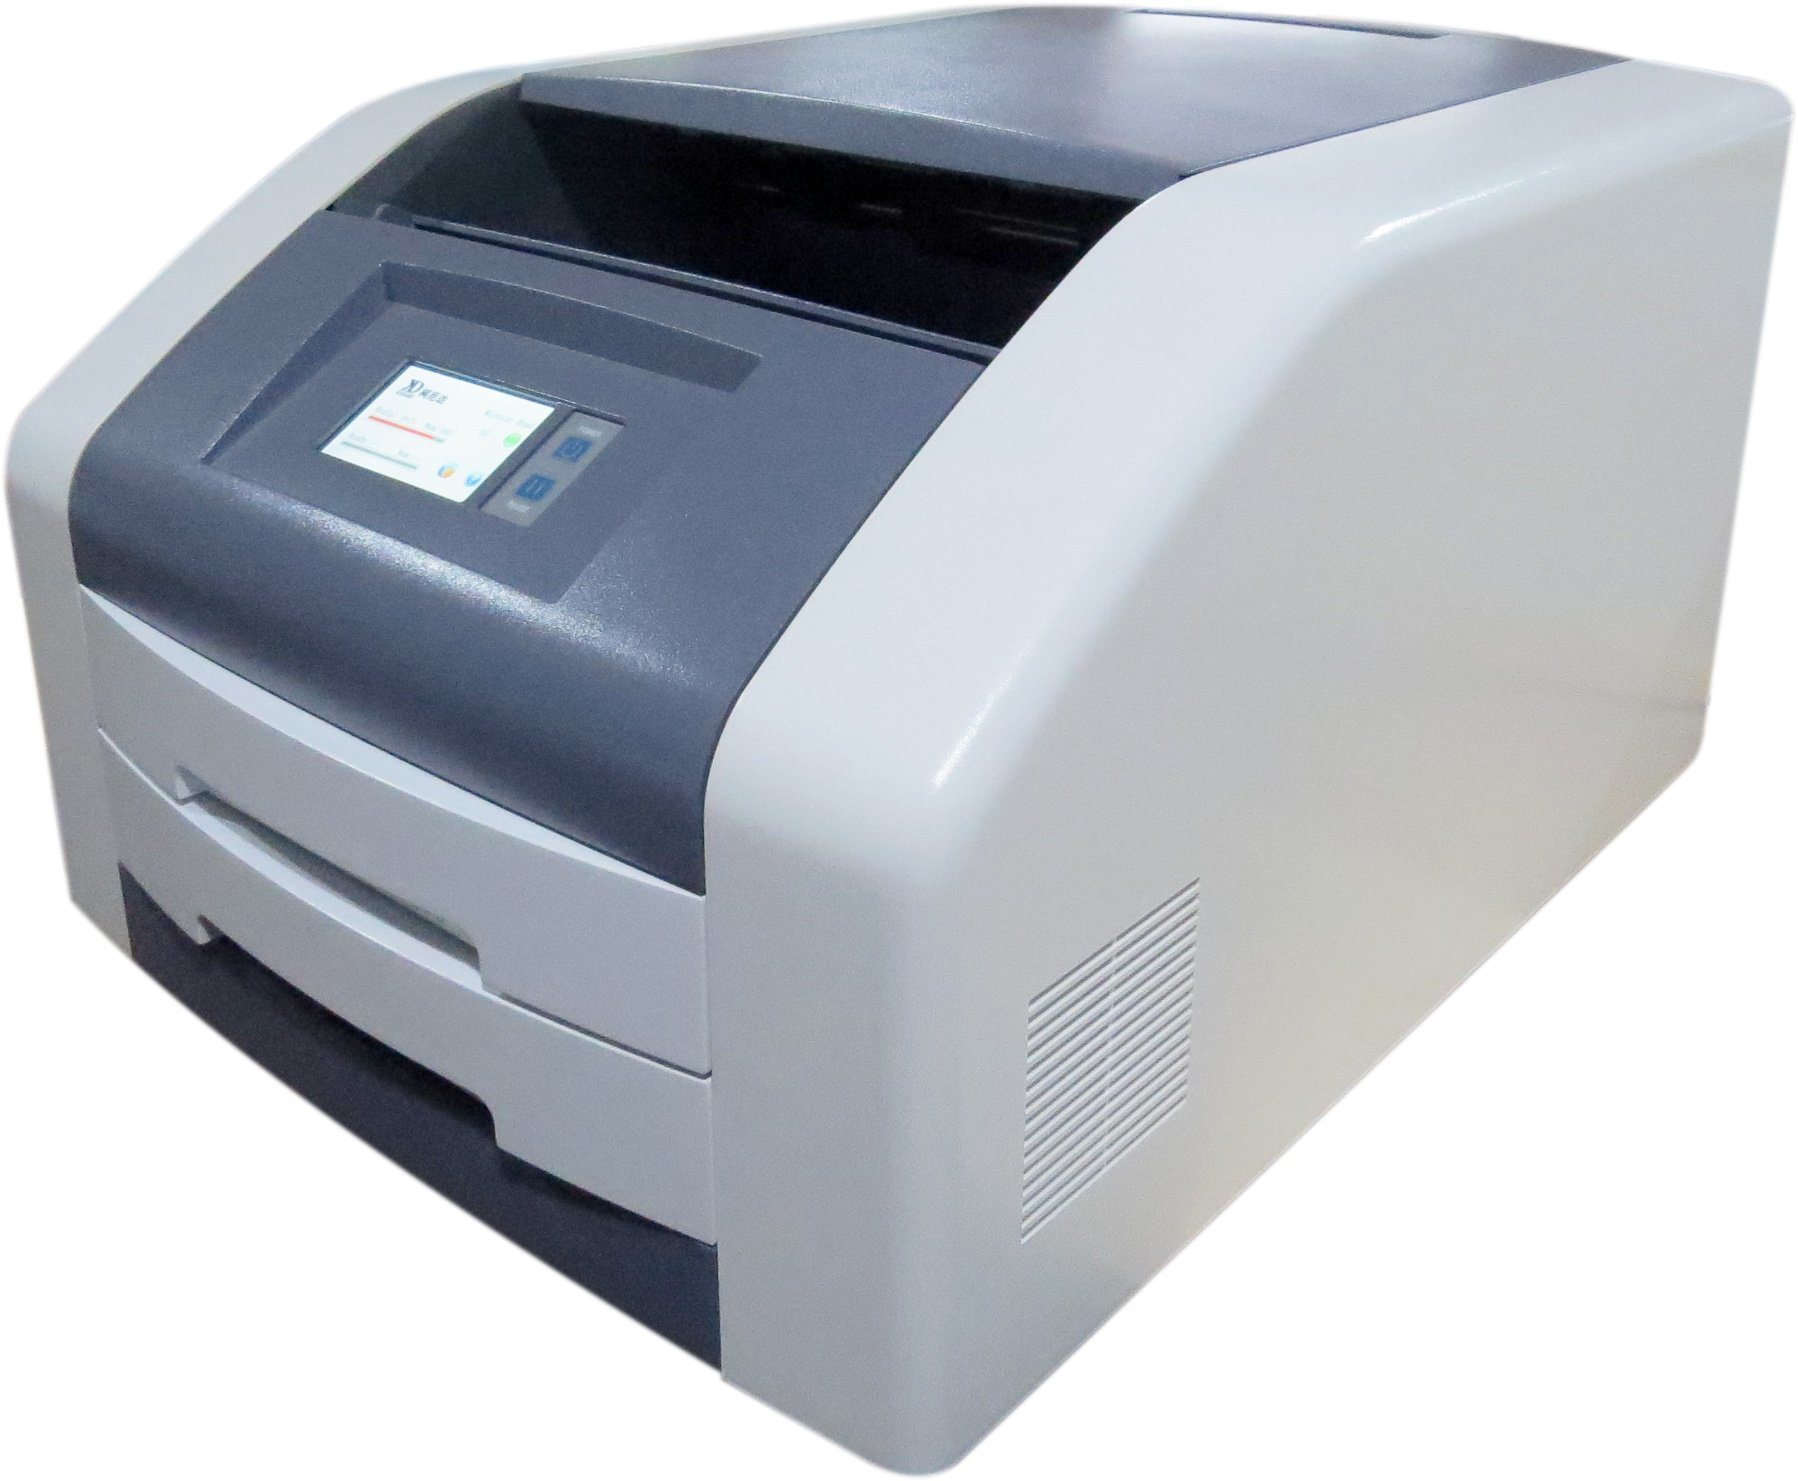 Global Medical Laser Imager Market 2020 Growth Factors, Product Overview,  Segmentation and Forecast Study to 2025 – The Courier